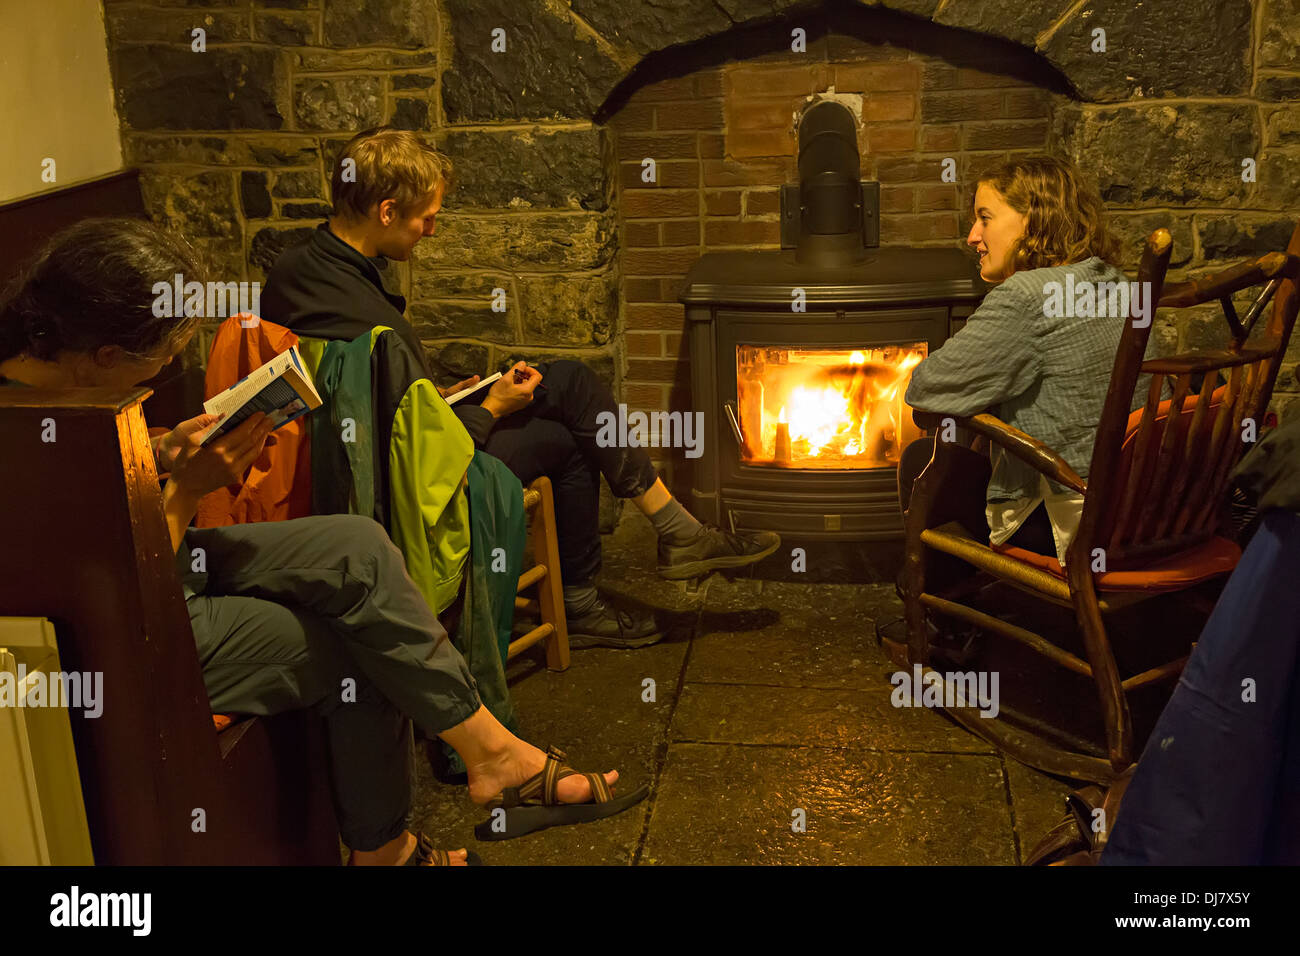 Relaxing in front of a peat fire in the hostel, Doolin, Co. Clare, Ireland - Stock Image